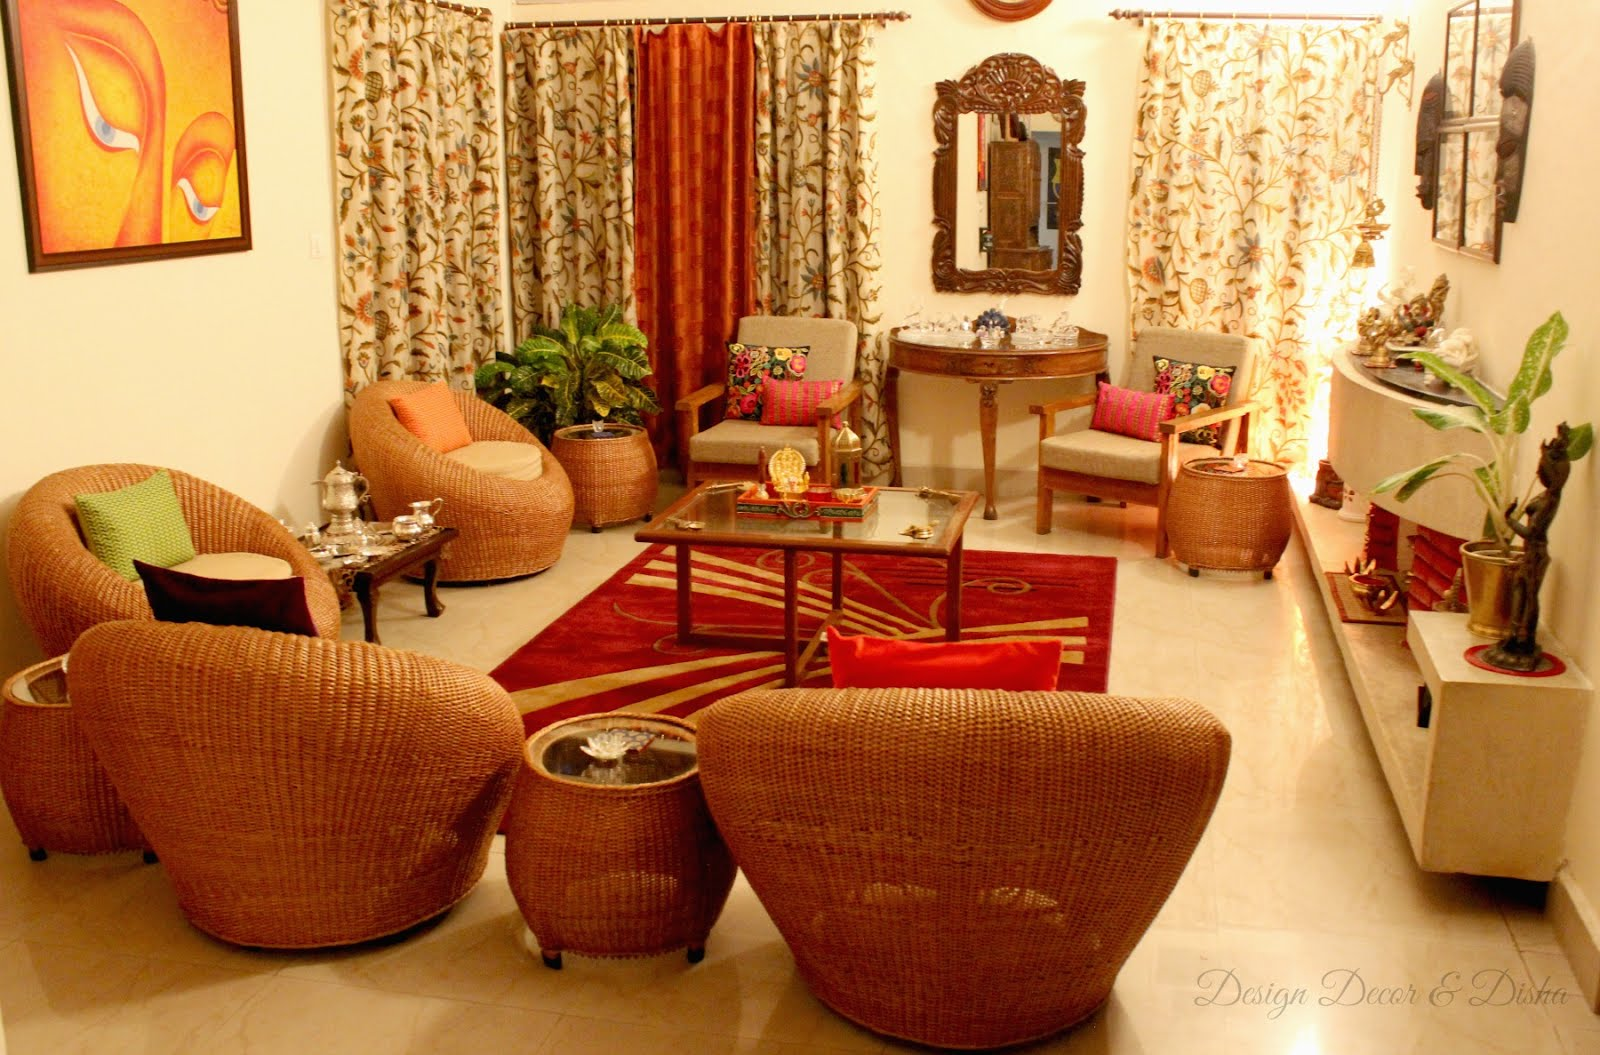 Design decor disha an indian design decor blog home tour parul chaturvedi - Indian home decor online style ...